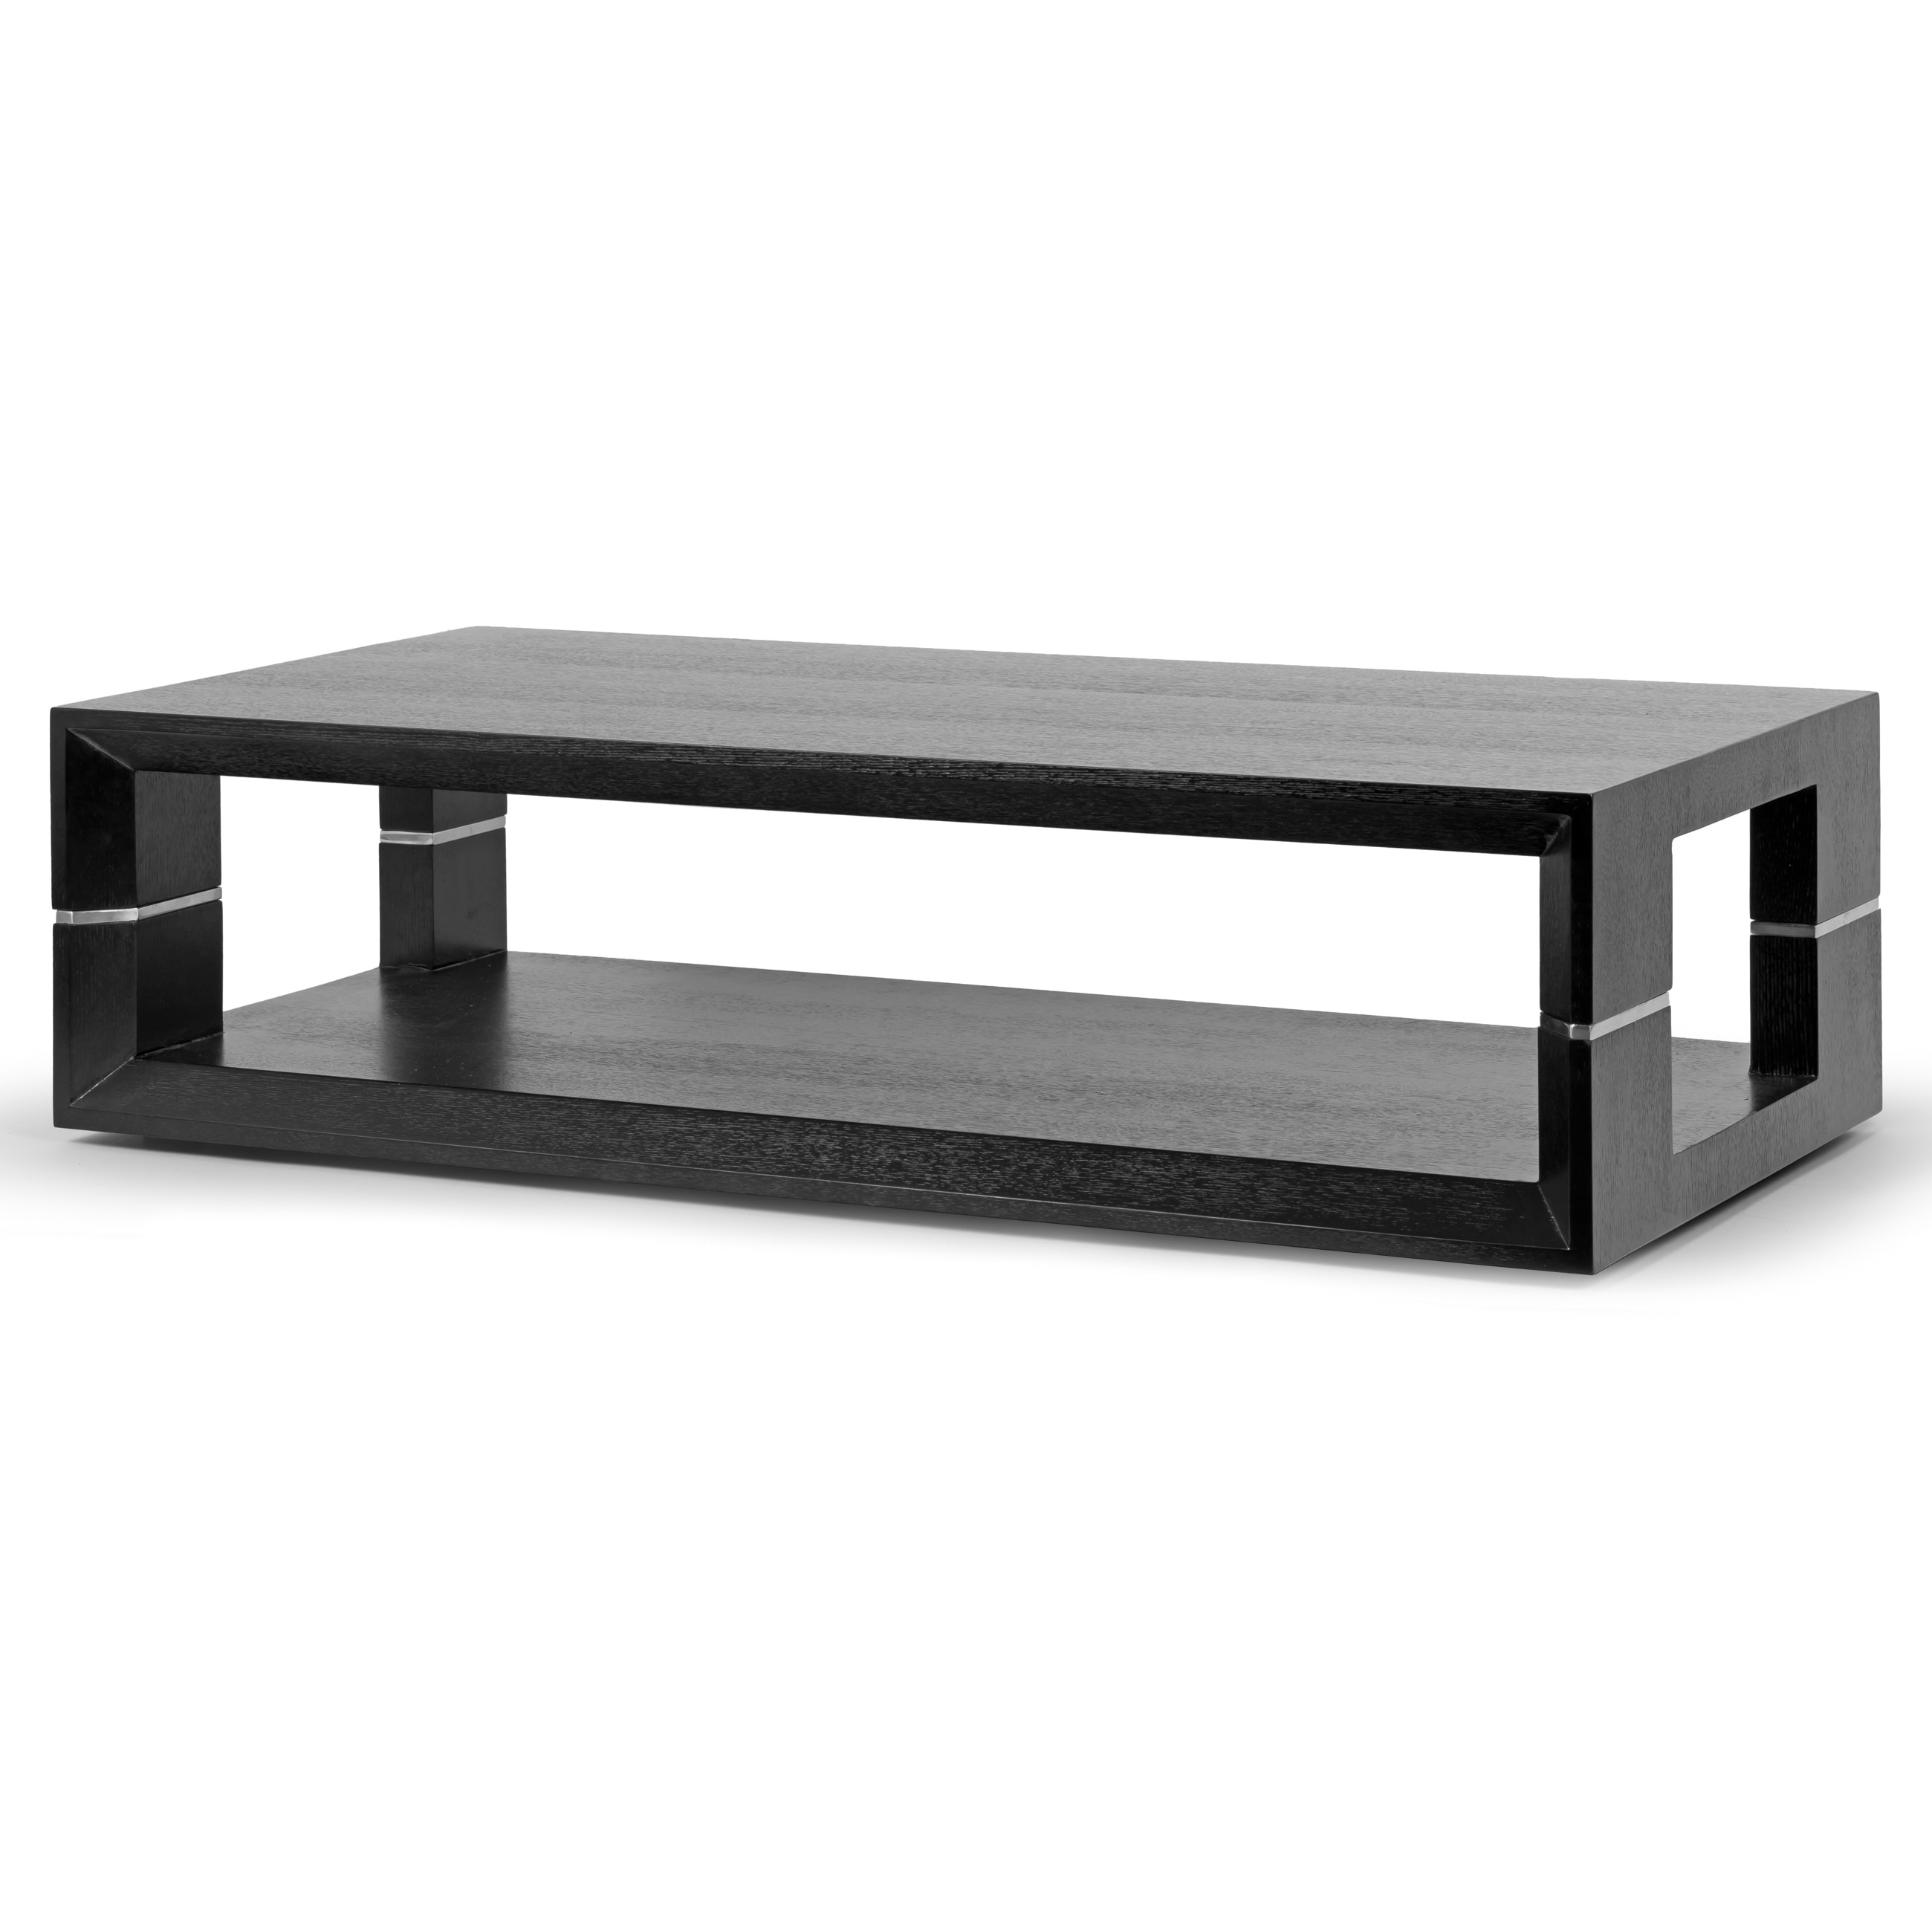 - Shop Akia Black Modern Coffee Table With Metal Accent Legs